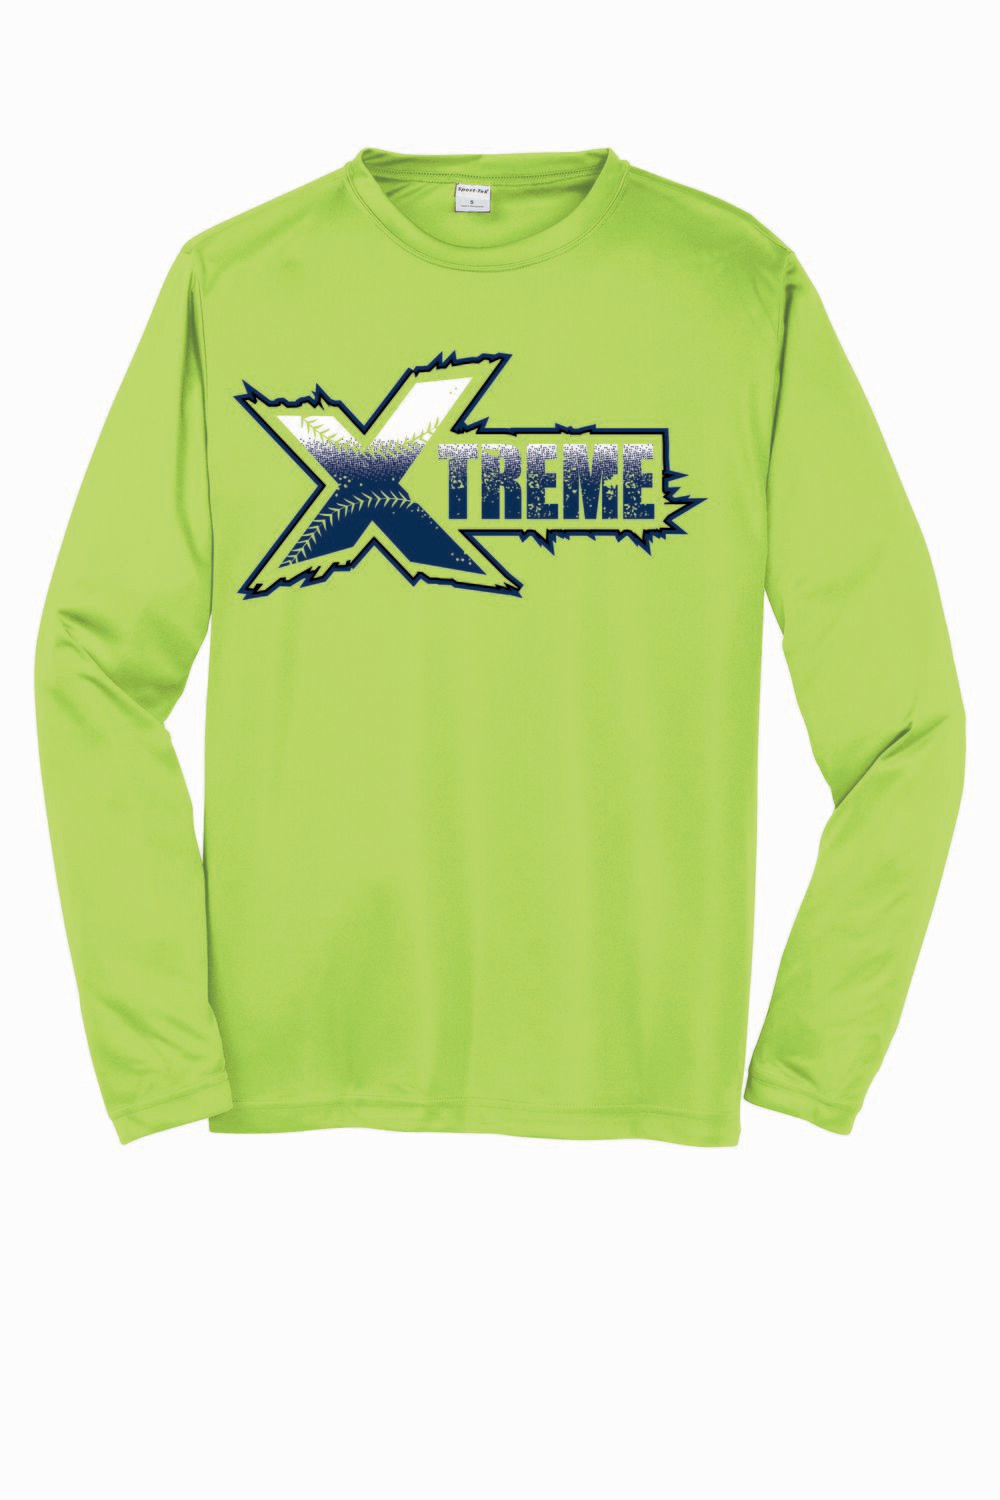 YST350LS - Sport-Tek® Youth Long Sleeve PosiCharge® Competitor™ Tee